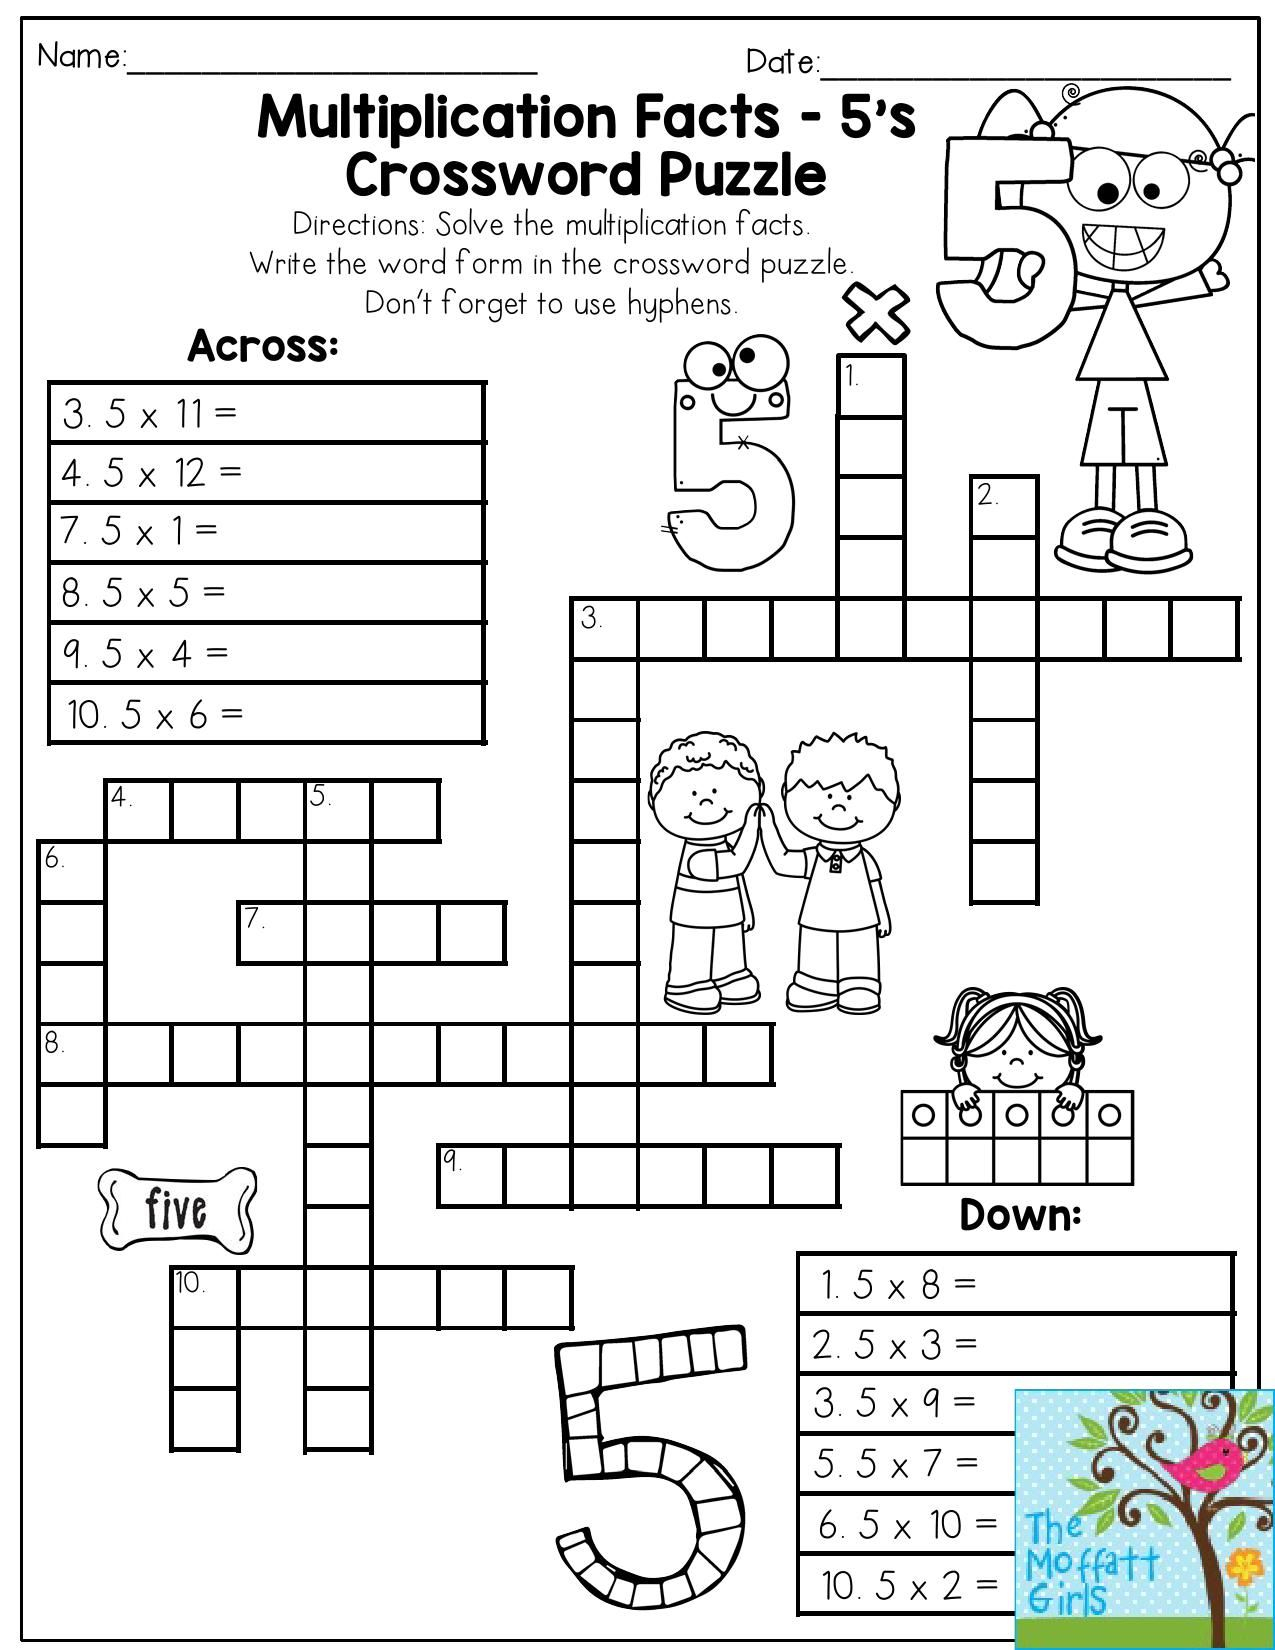 Multiplication Facts Crossword Puzzle- Third Grade Students Love - Printable Crossword Puzzles For 4Th Graders